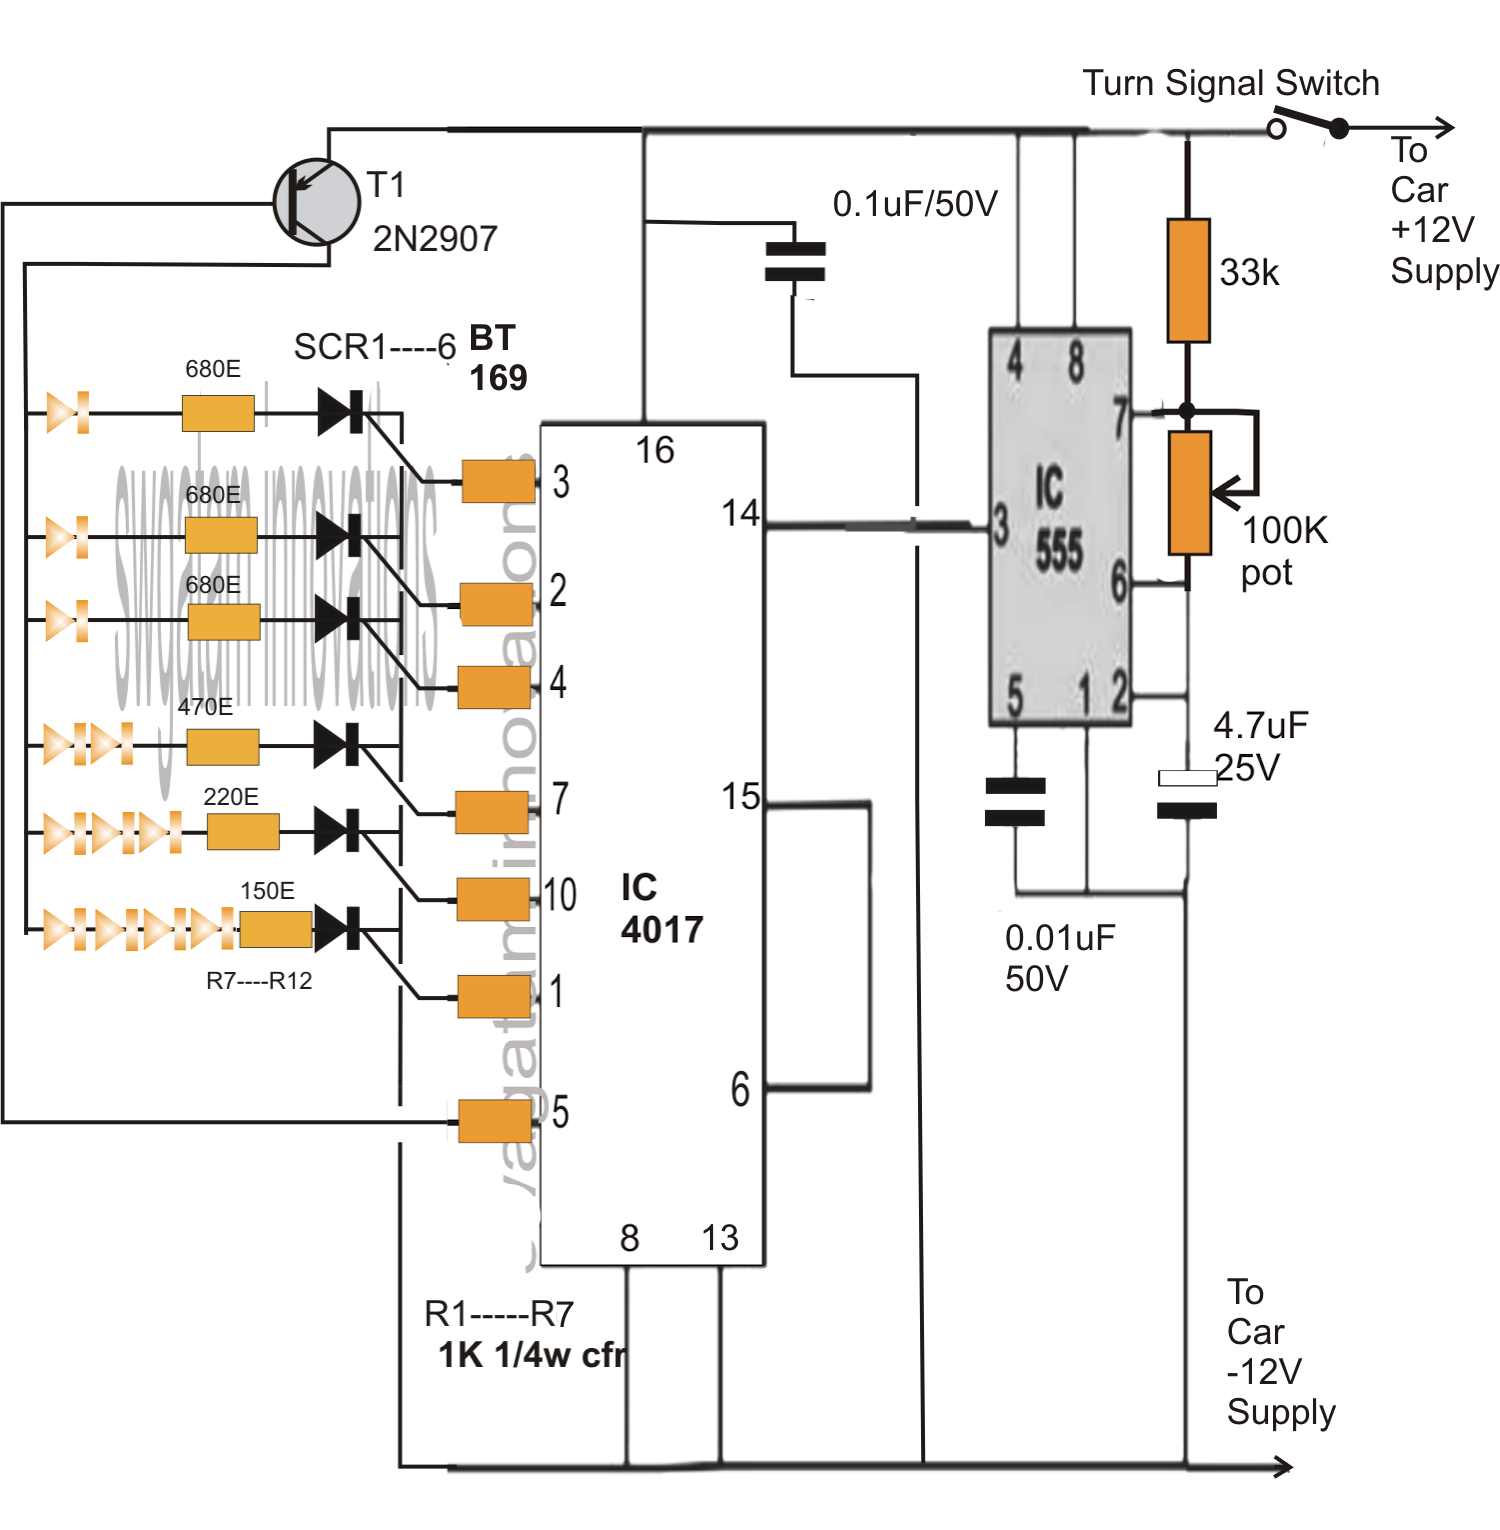 sequential bar graph turn light indicator circuit for car